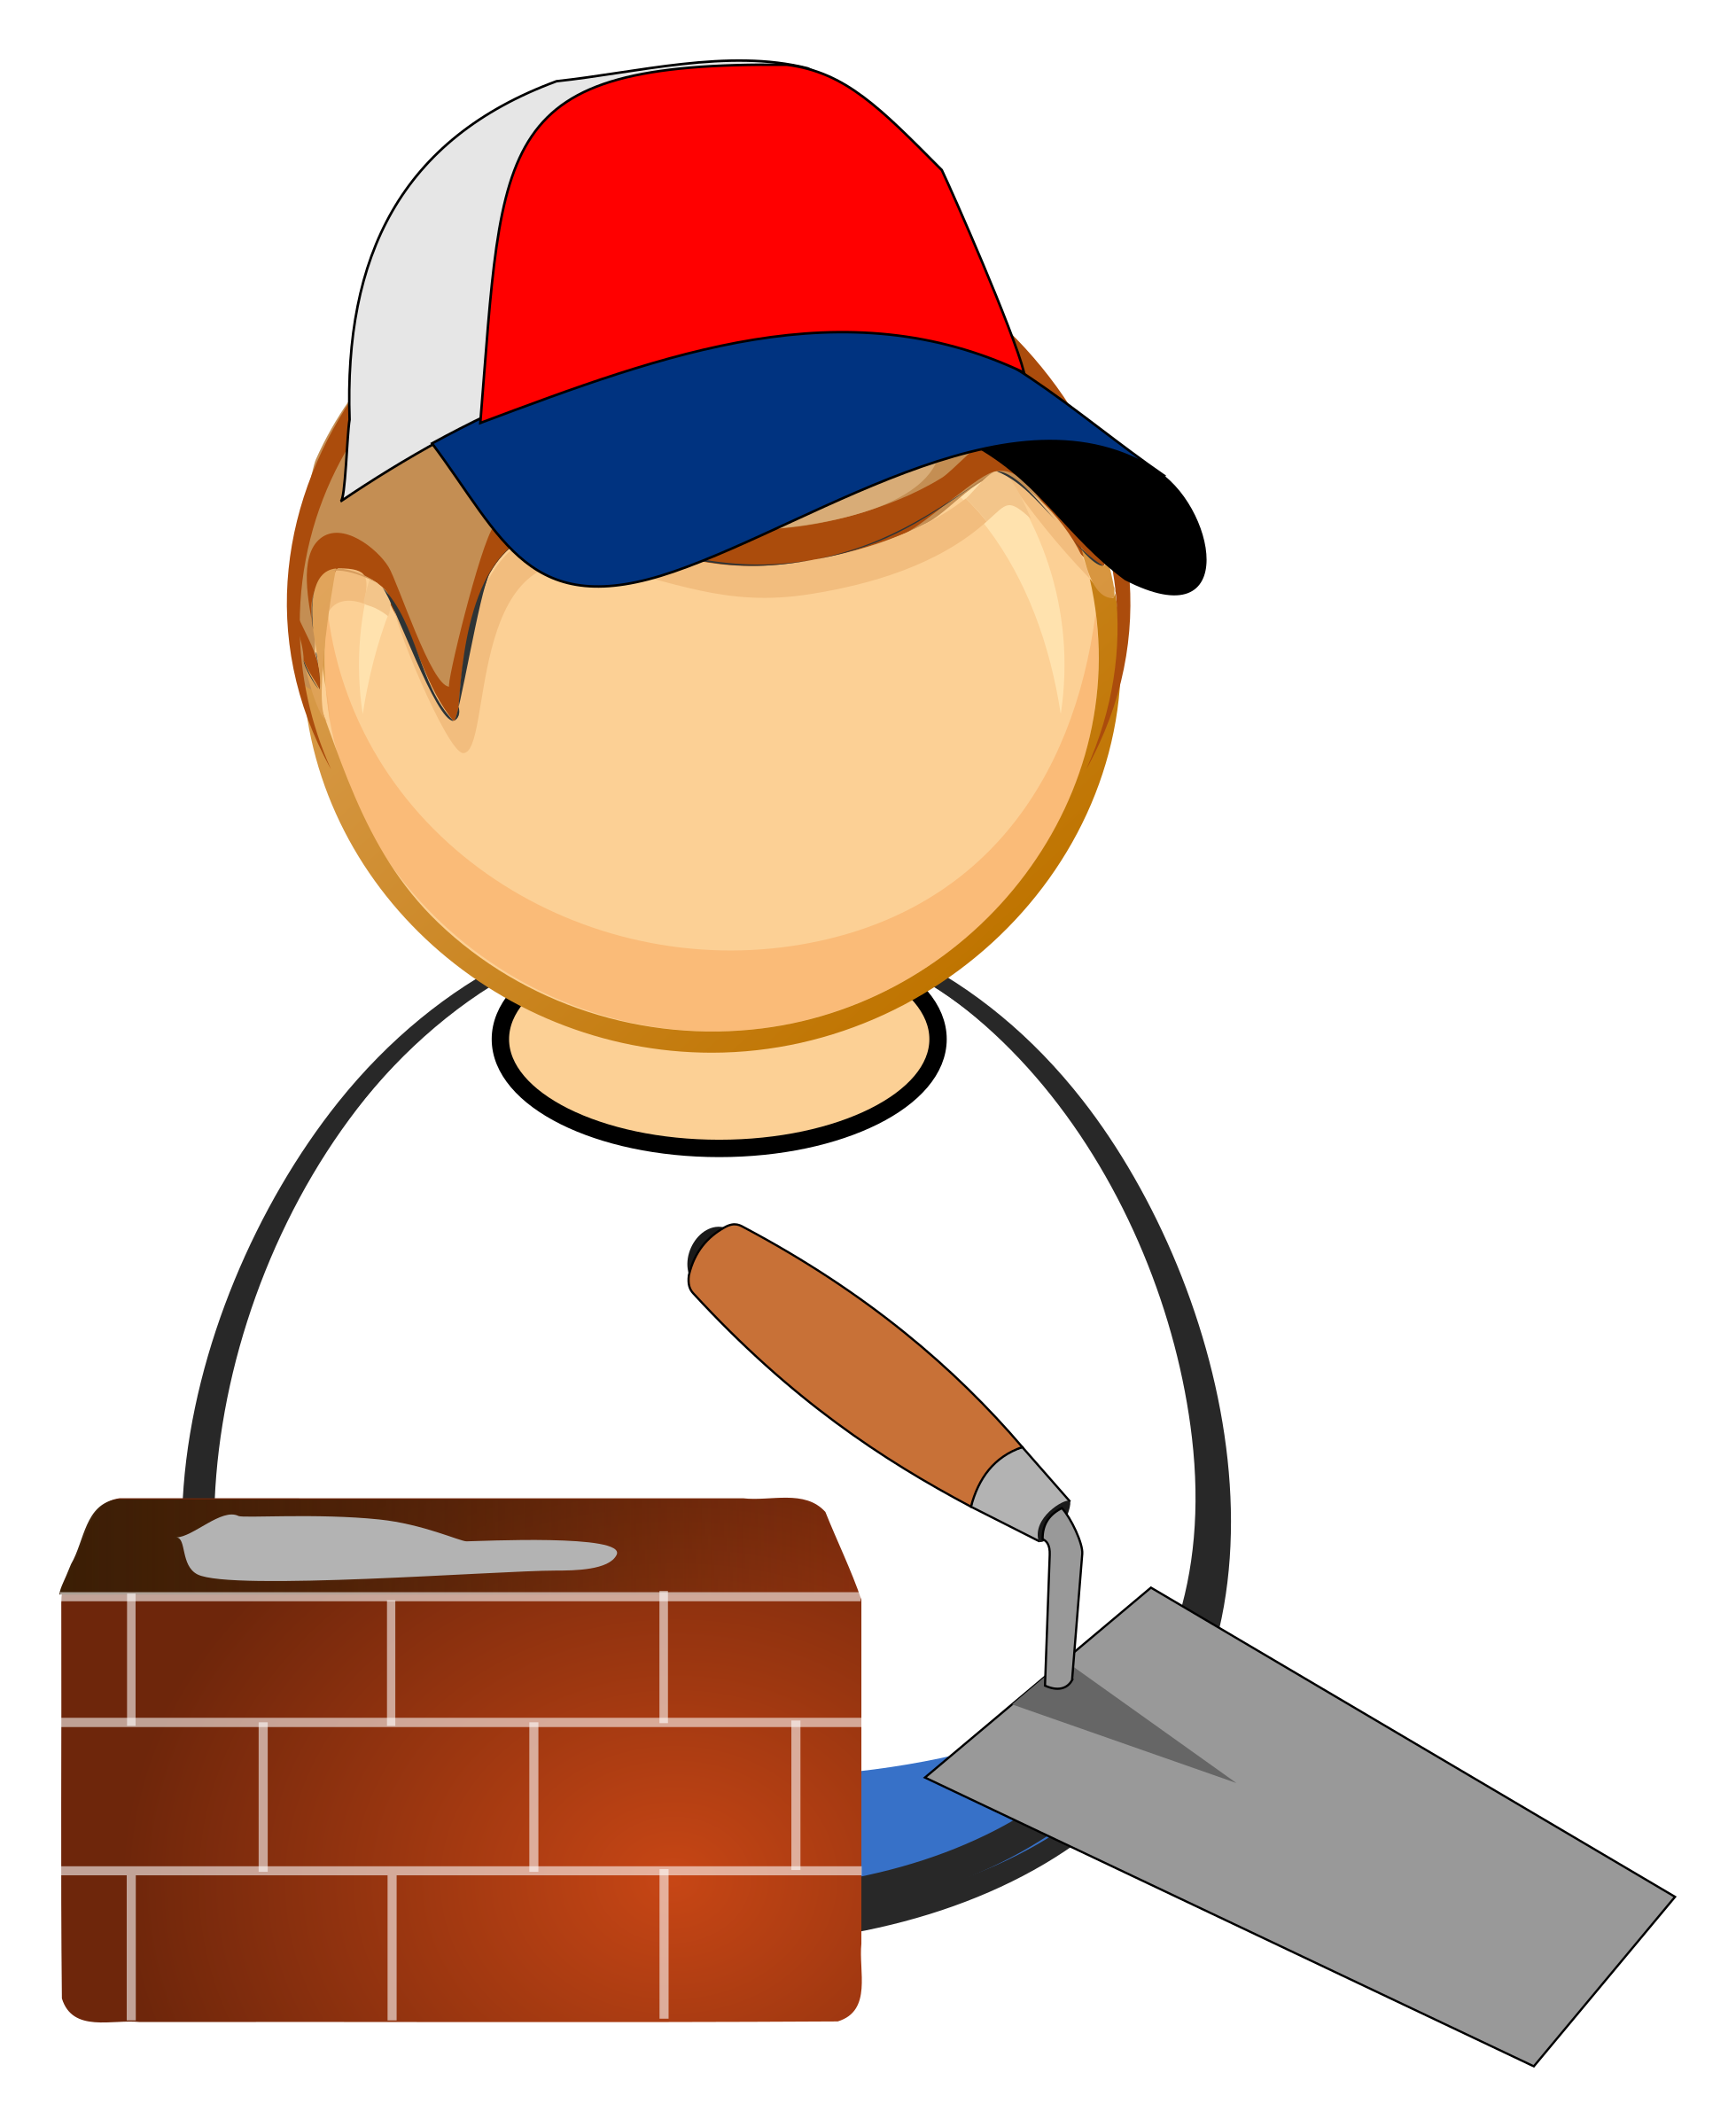 vector transparent download Bricklayer big image png. Mason clipart.